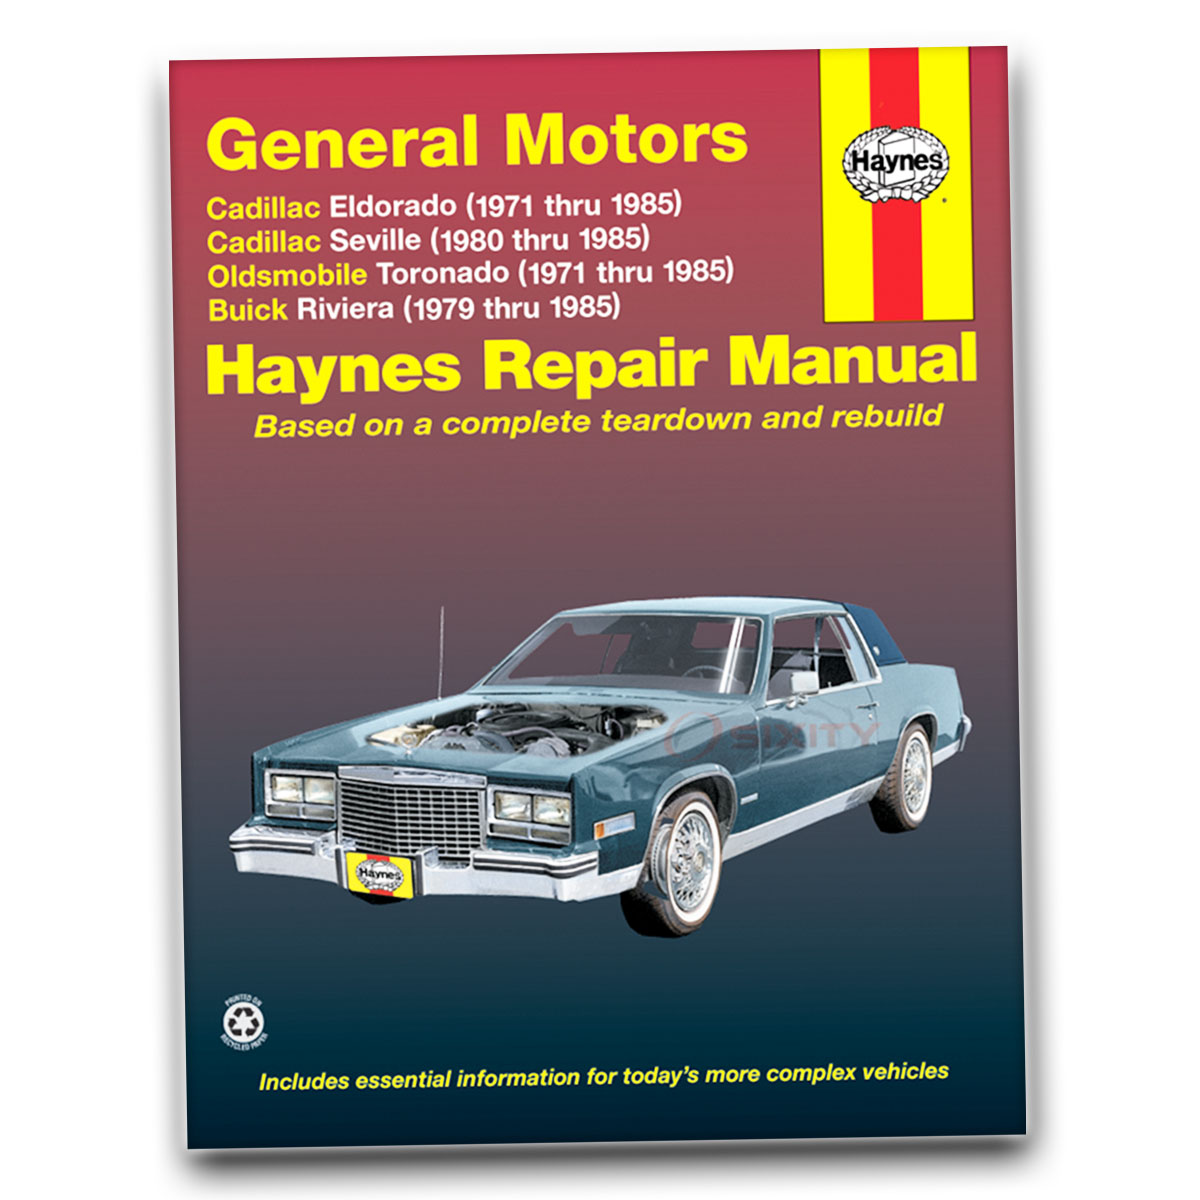 Manual Haynes Cadillac 2001 Eldorado Wiring Harness Repair For Biarritz Touring Rh Ebay Com Manuals Uk Clymer